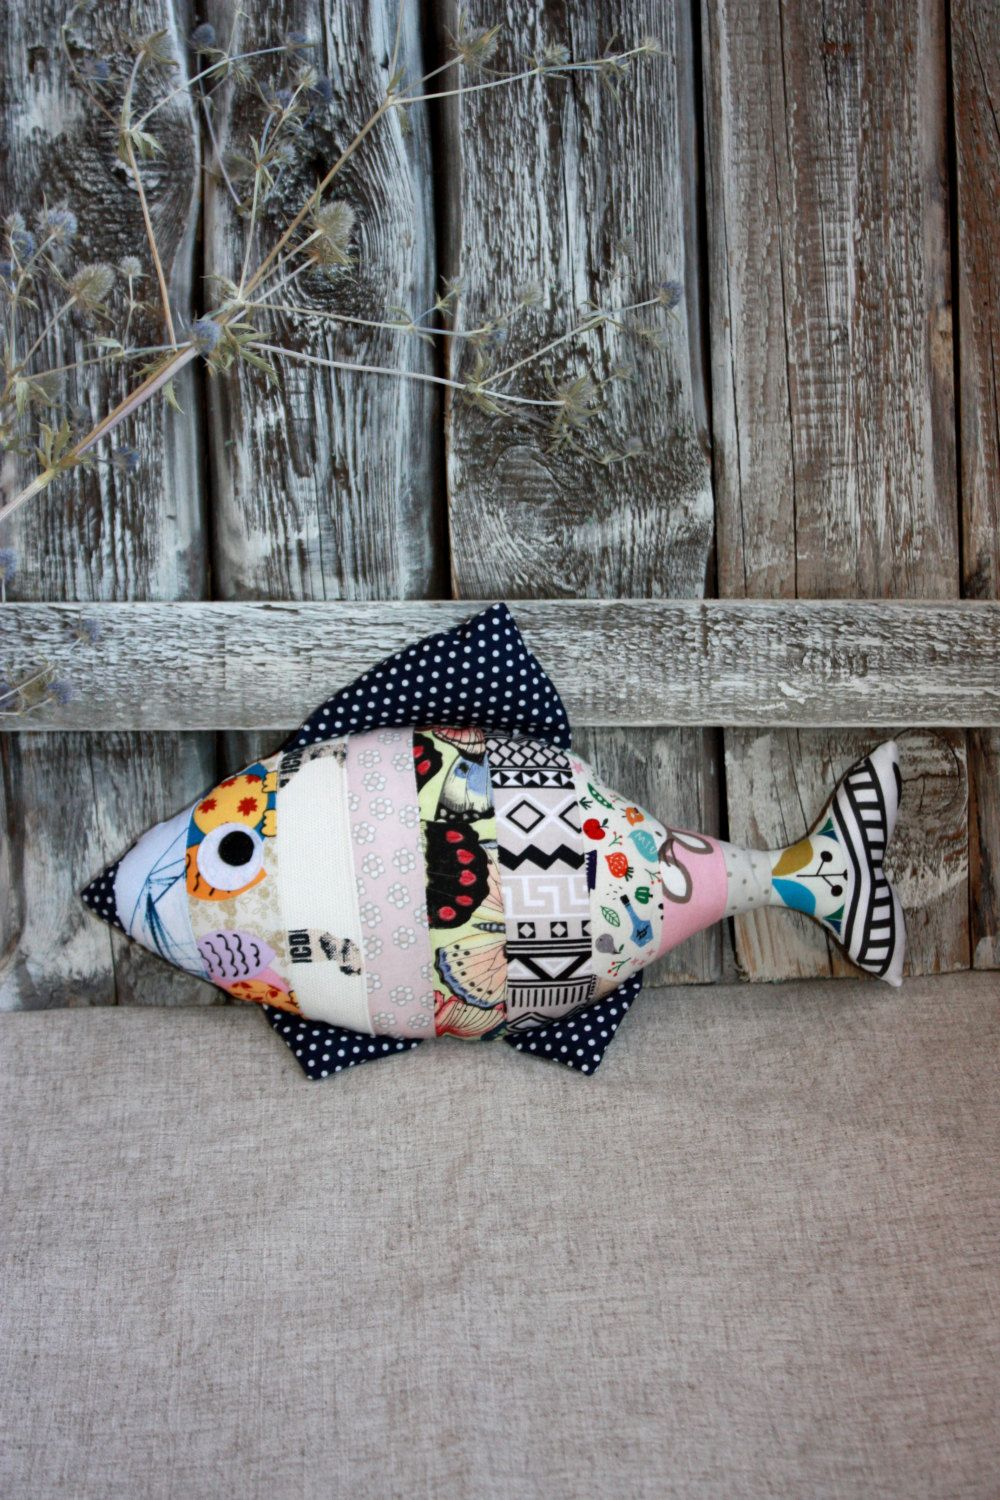 Stuffed Fish Decorative Pillow Multicolor Striped Catriona Monique Top Handle Bag Grey Toy Cotton Pinned By Pin4etsycom